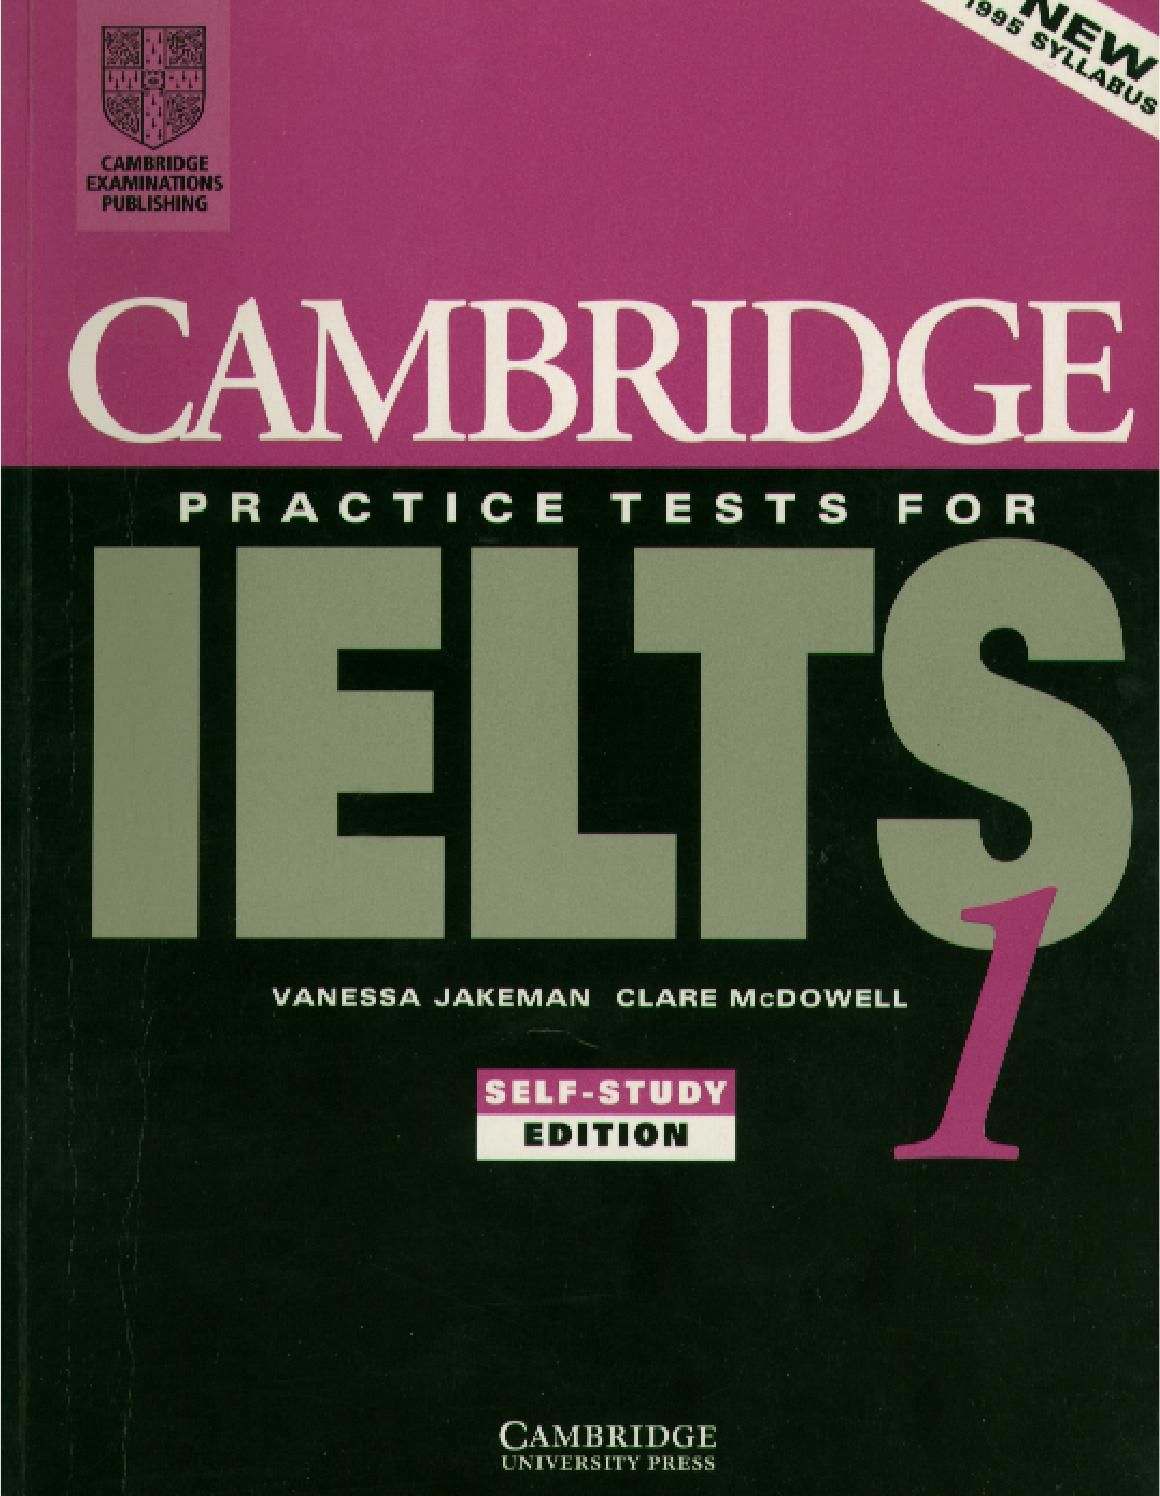 Libros Listening Ingles Ielts Cambridge 1 Cae Pinterest Idiomas Educacion